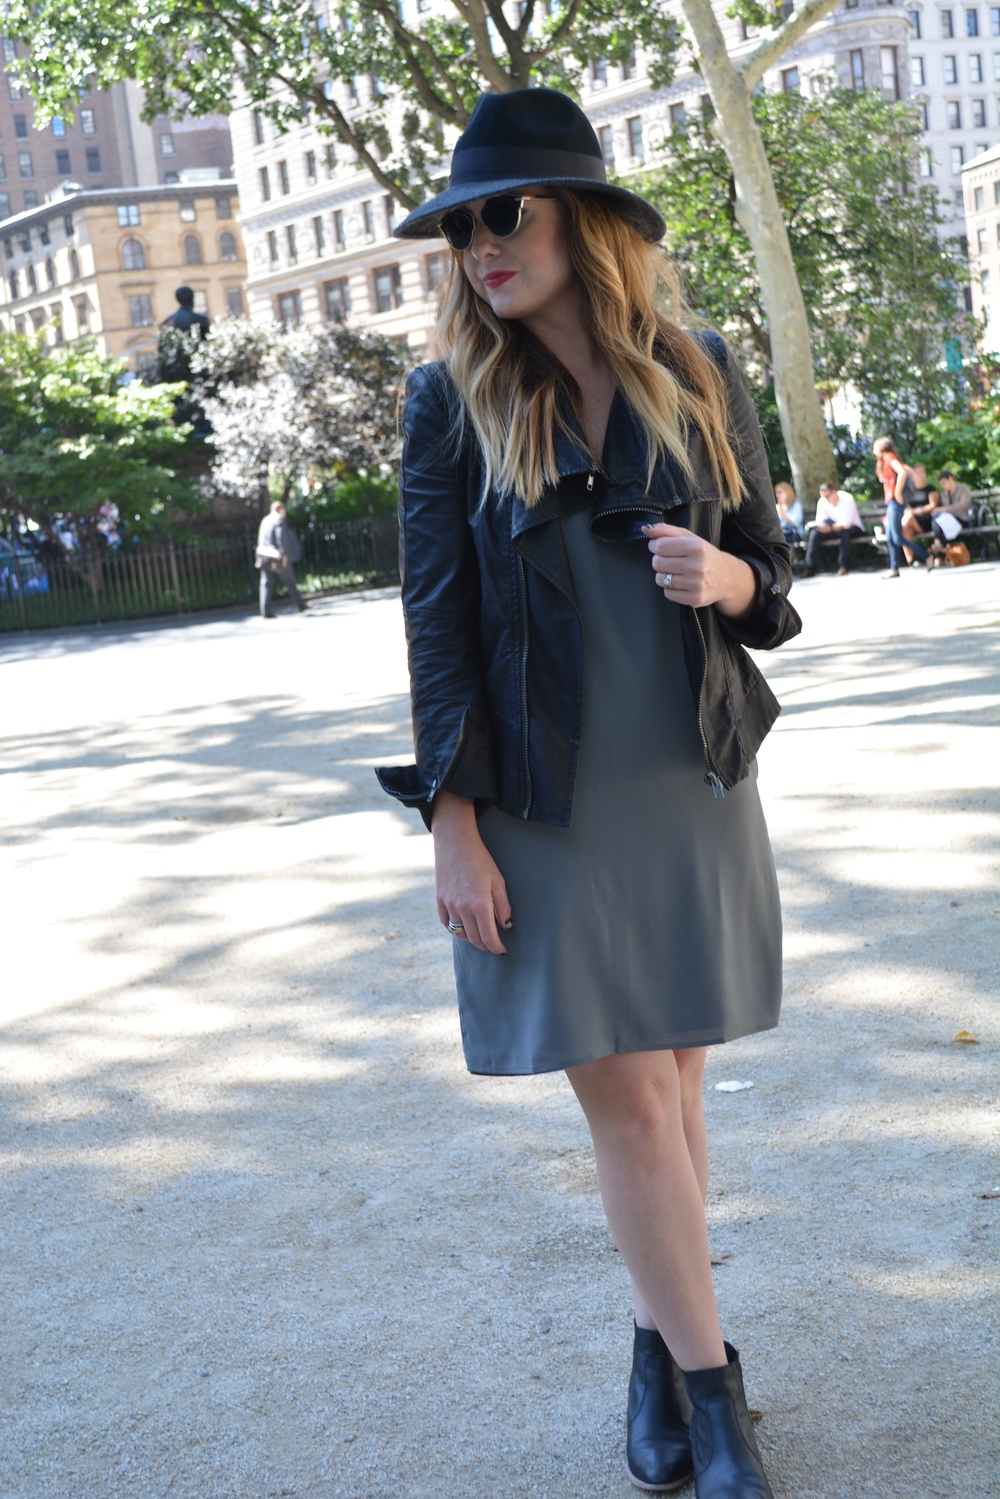 Wide brim hat, moto jacket with shift dress